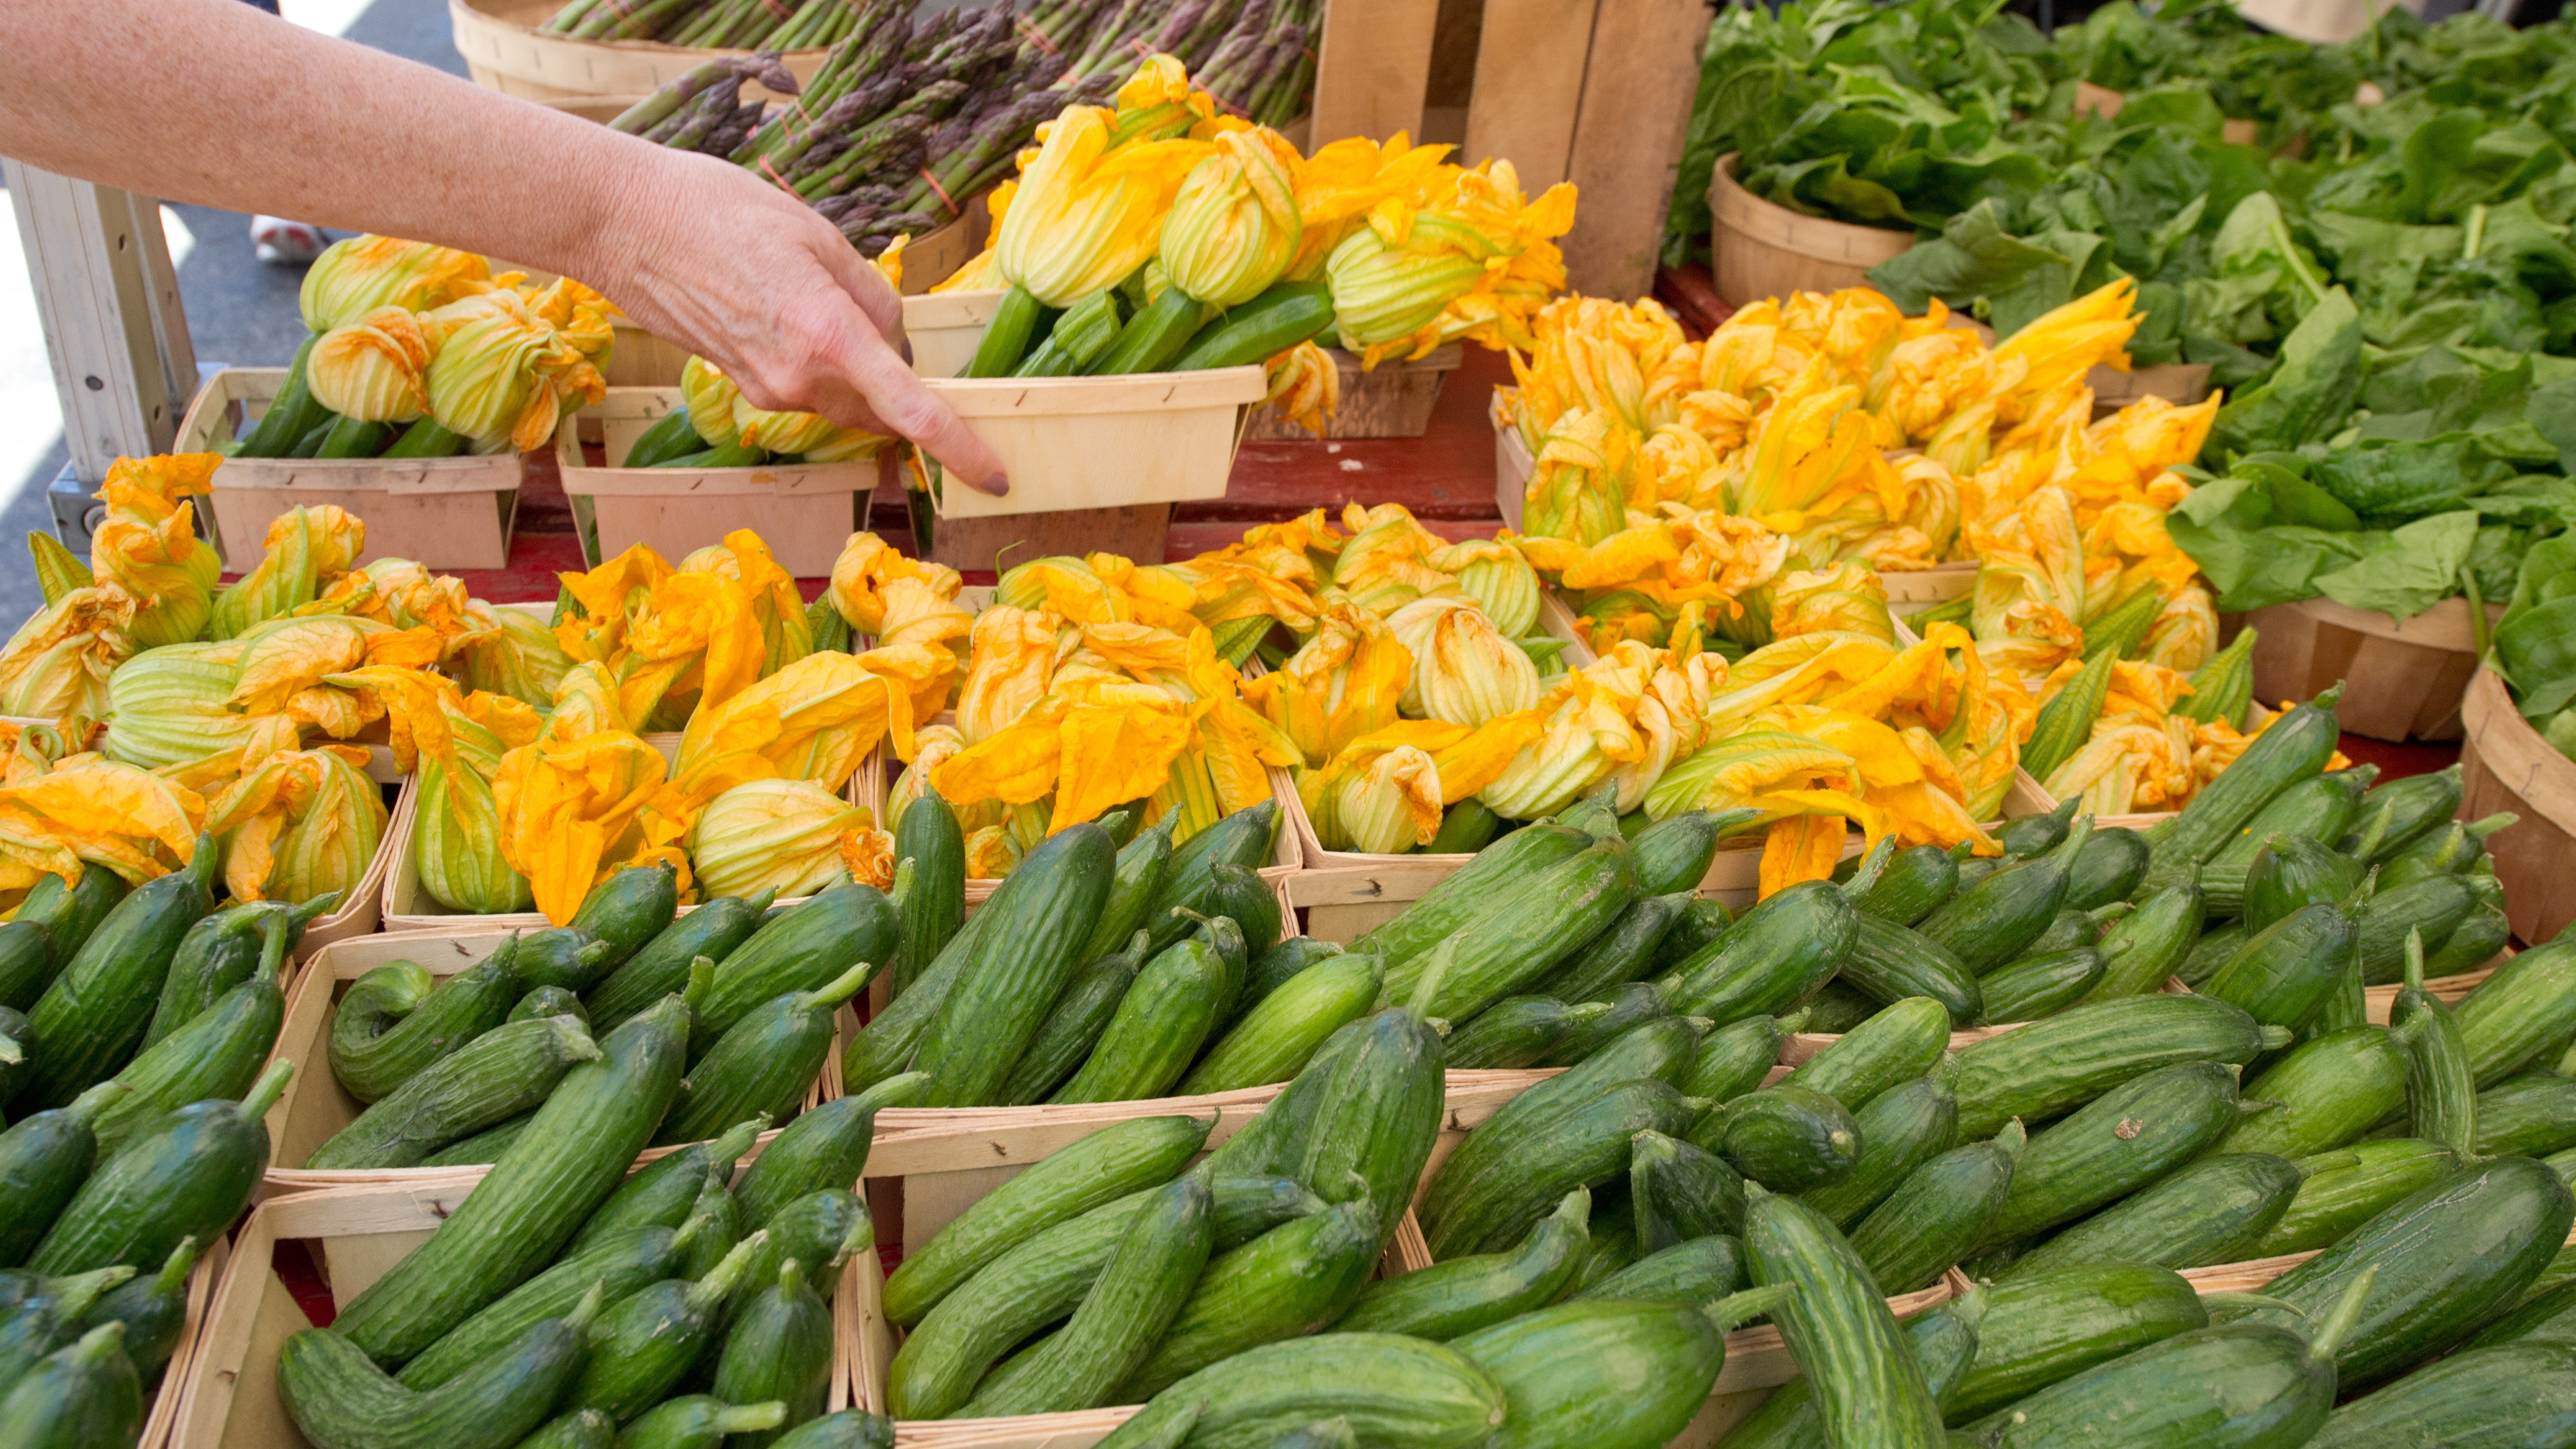 Nationwide, there are too few farmers to populate market stalls and too few customers filling their canvas bags with fresh produce at each market. (Karen Bleier/AFP/Getty Images)